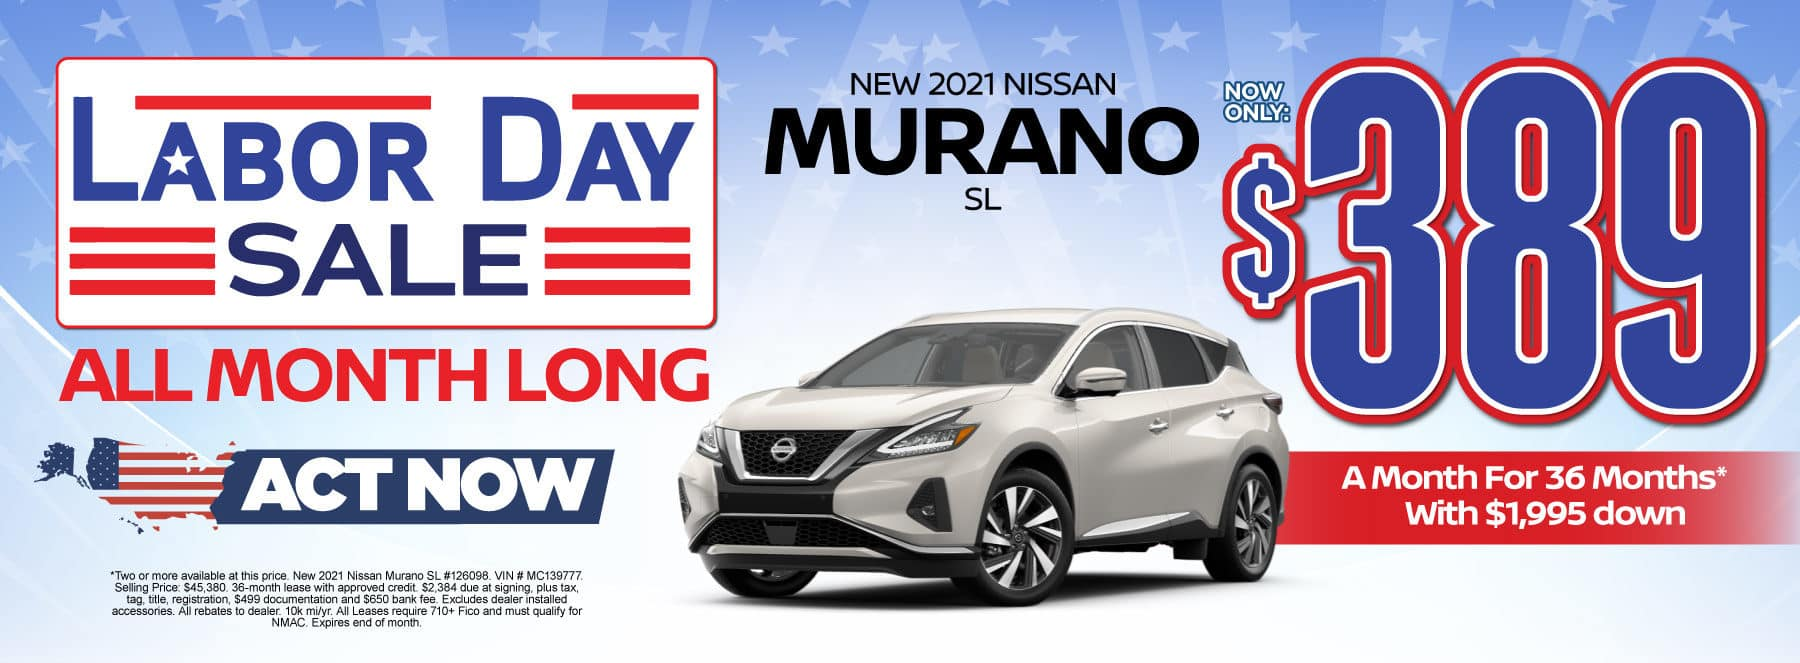 New 2021 Nissan Murano - Now only $389 a month - Act Now